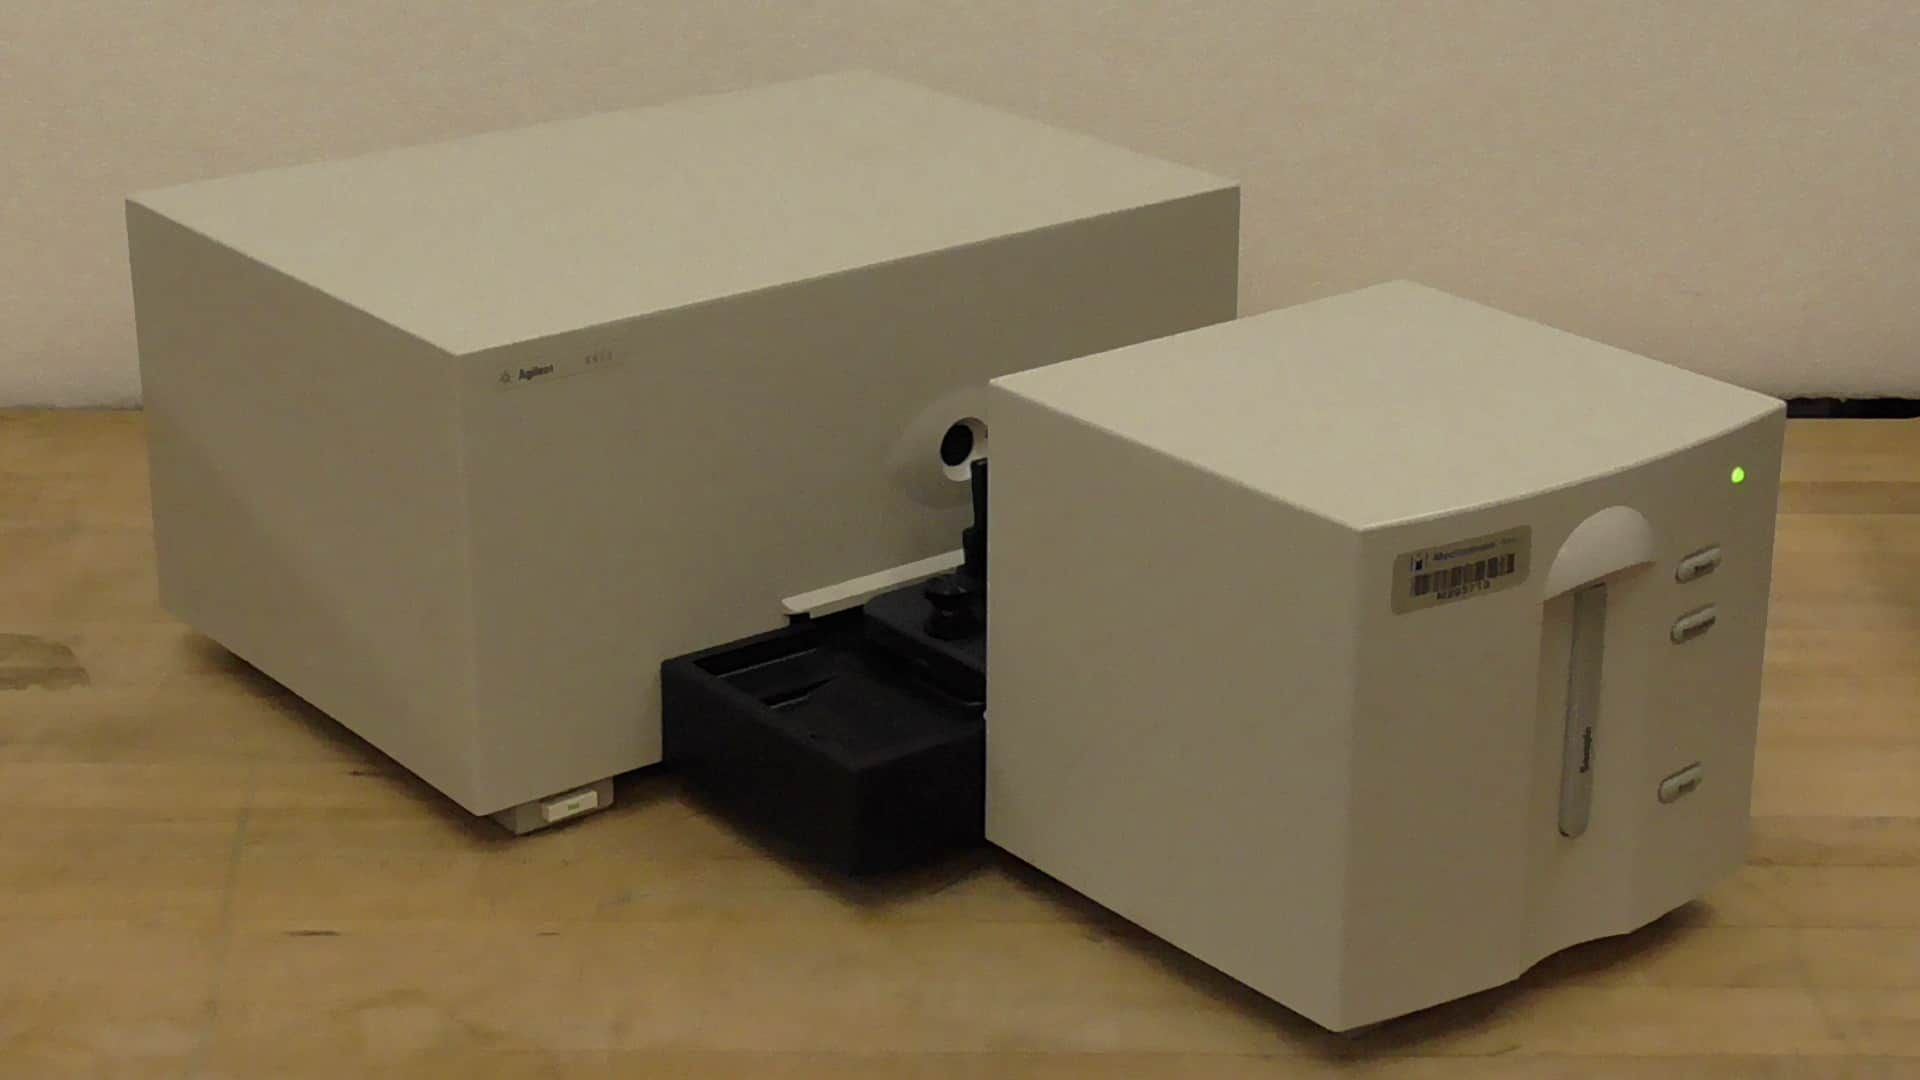 Hewlett Packard 8453 UV Vis Spectrophotometer with Software Loaded PC, Monitor, Keyboard and Mouse